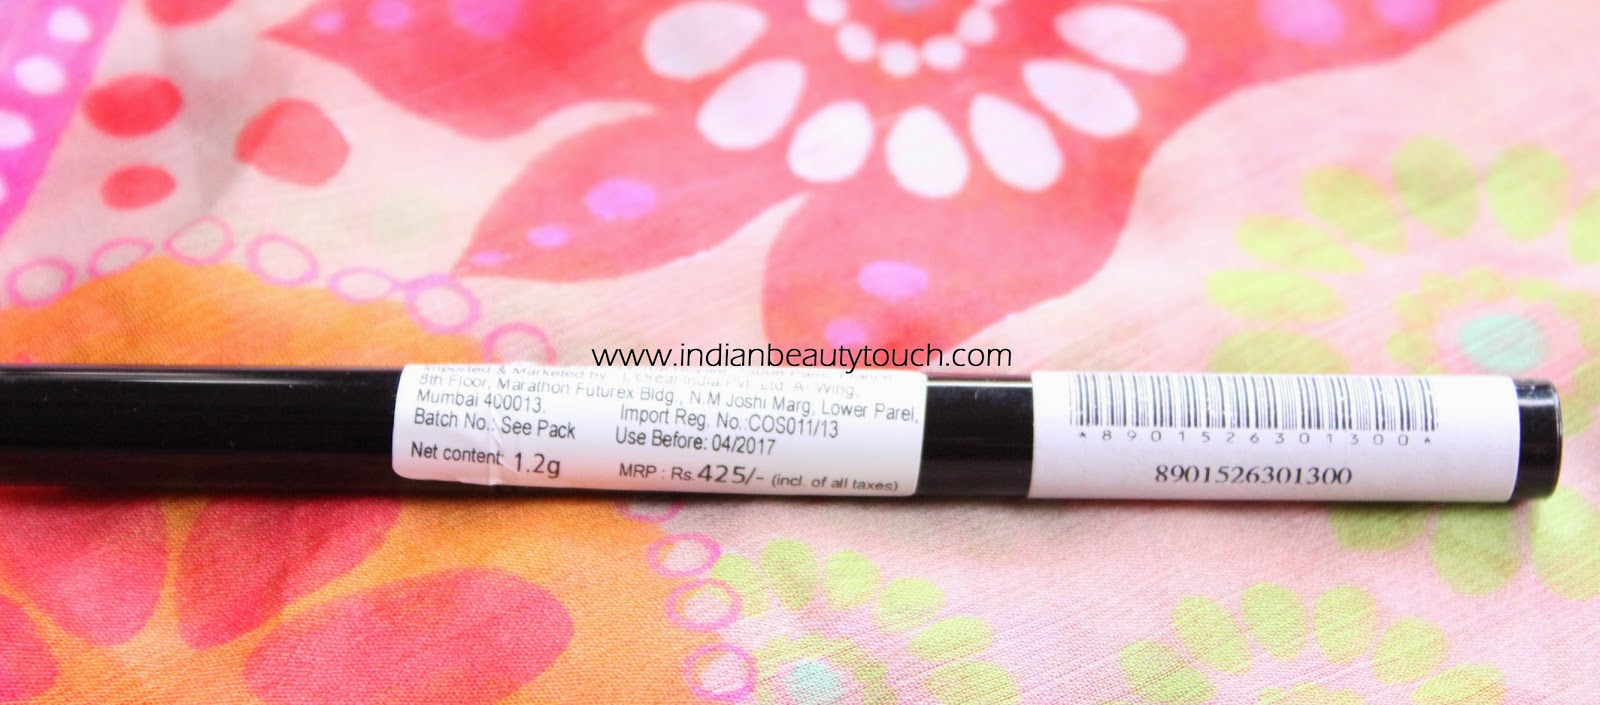 Maybelline The colossal Liner review and Swatches, maybelline india, Maybelline The colossal Liner review india, mayeblline kajal , affordable kajal in india, felt tip eyeliner in india, maybelline felt tip eyeliner review, Affordable makeup products in india, Maybelline The colossal kajal review and Swatches